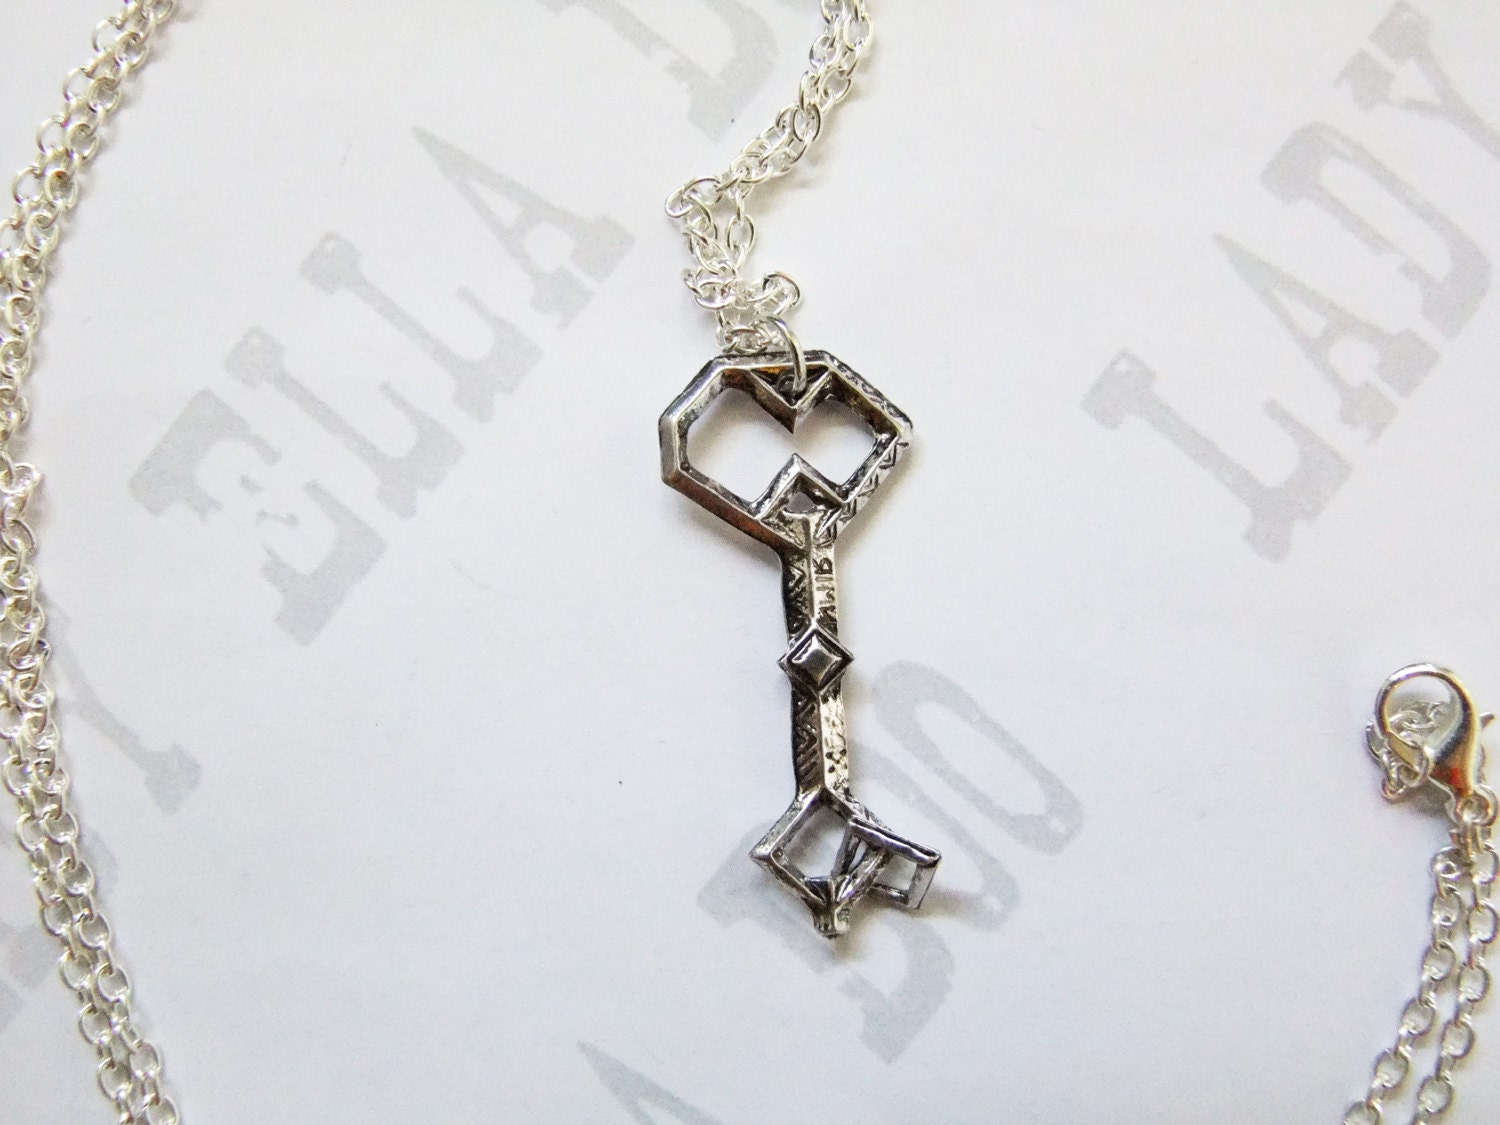 Thorin's key necklace